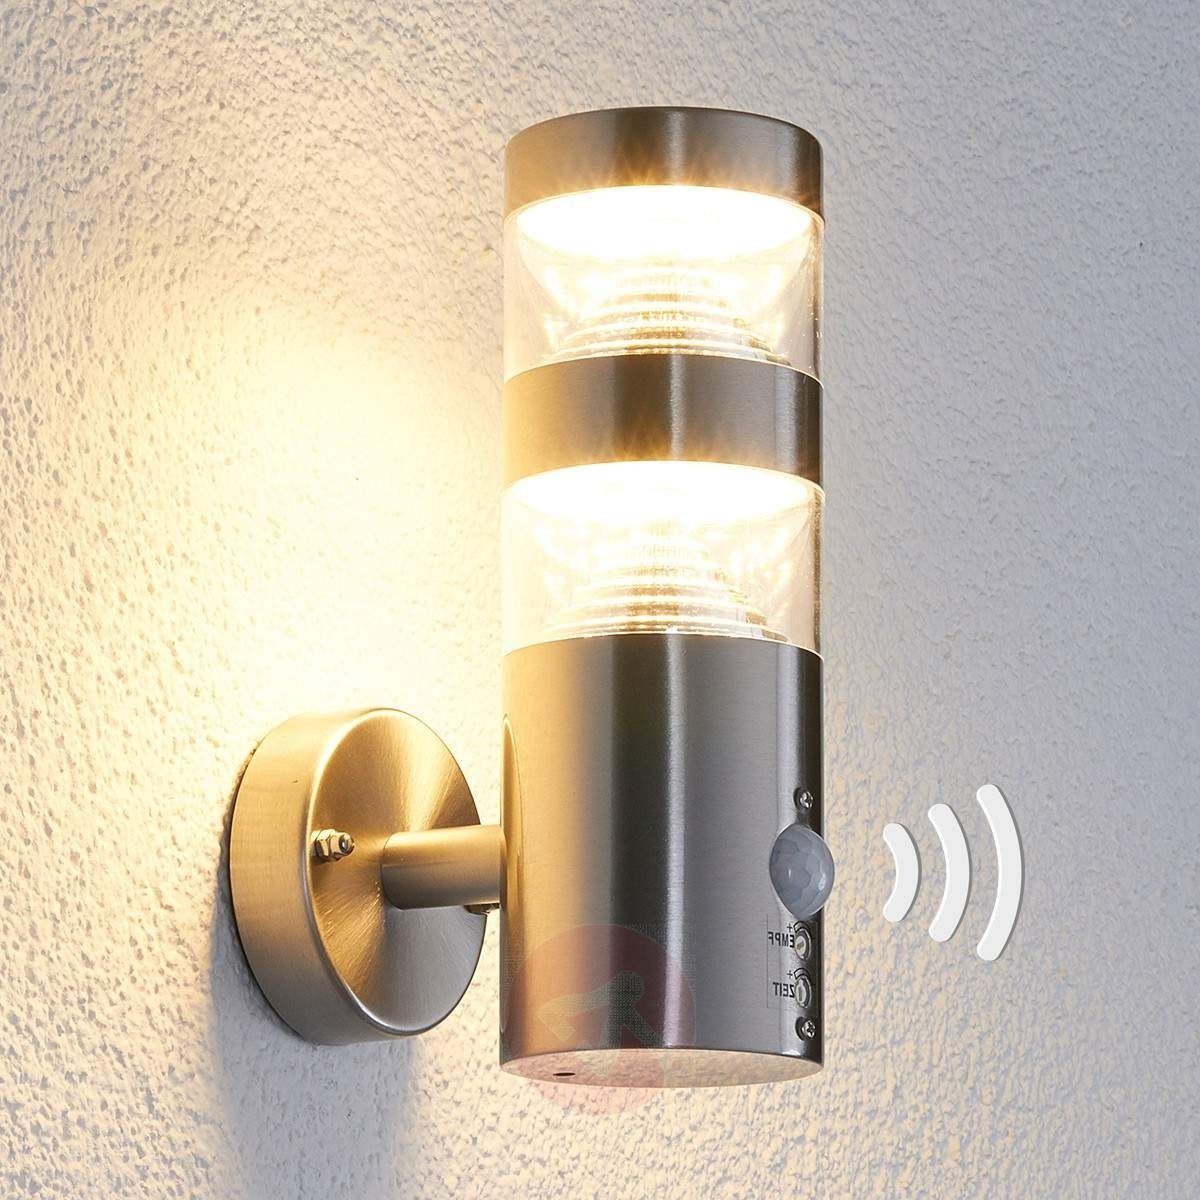 Pir Sensor Outdoor Wall Lighting Intended For Most Current Led Outdoor Wall Light Lanea With Motion Sensor (View 9 of 20)